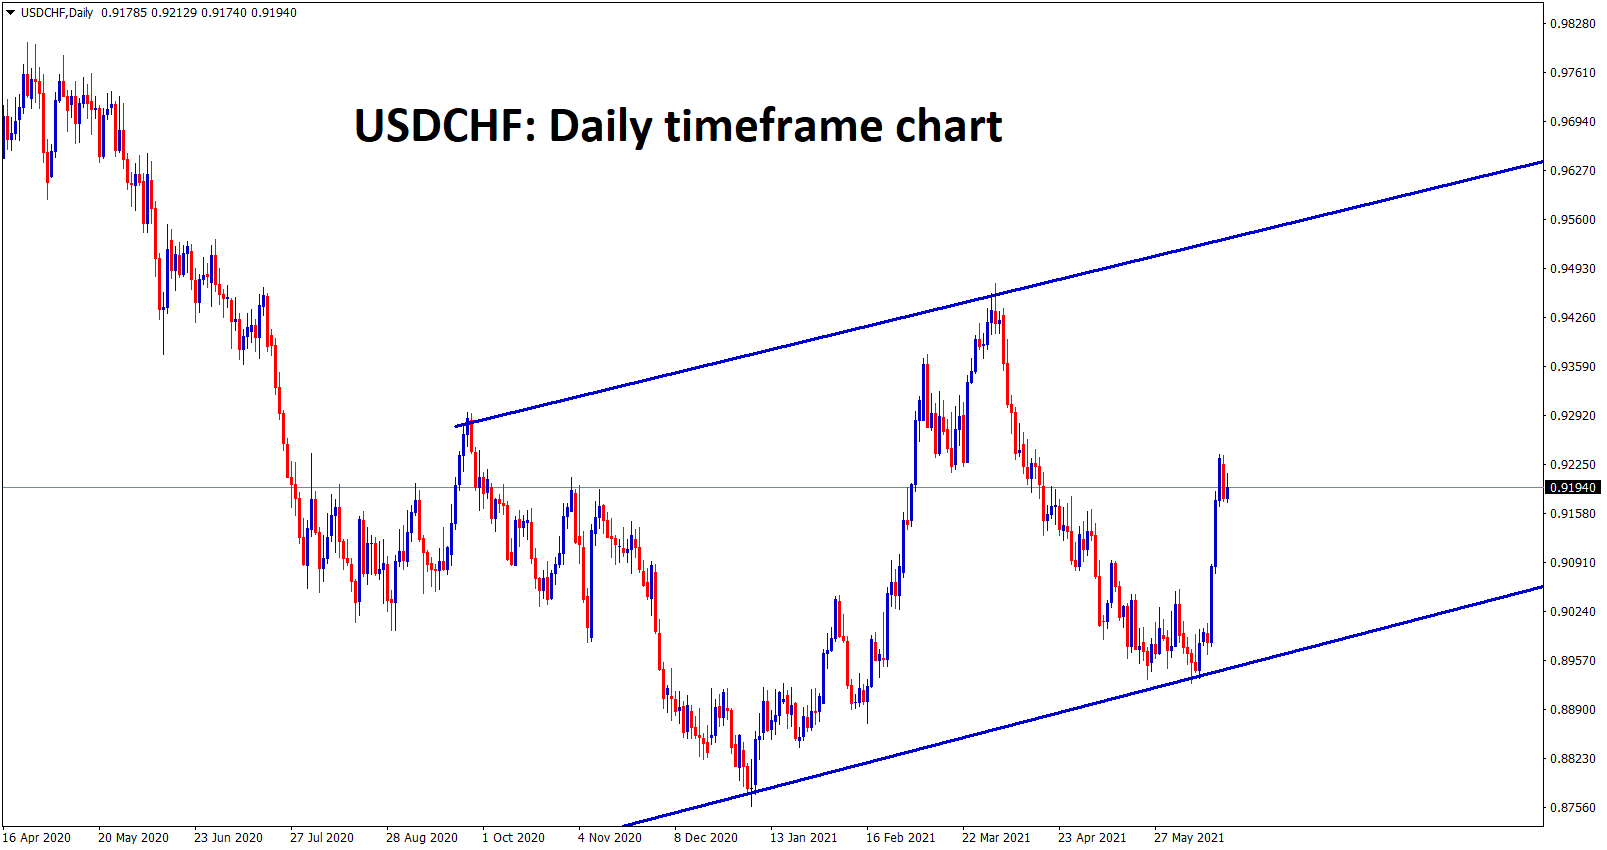 USDCHF is moving in a bigger range after bouncing back from the higher low